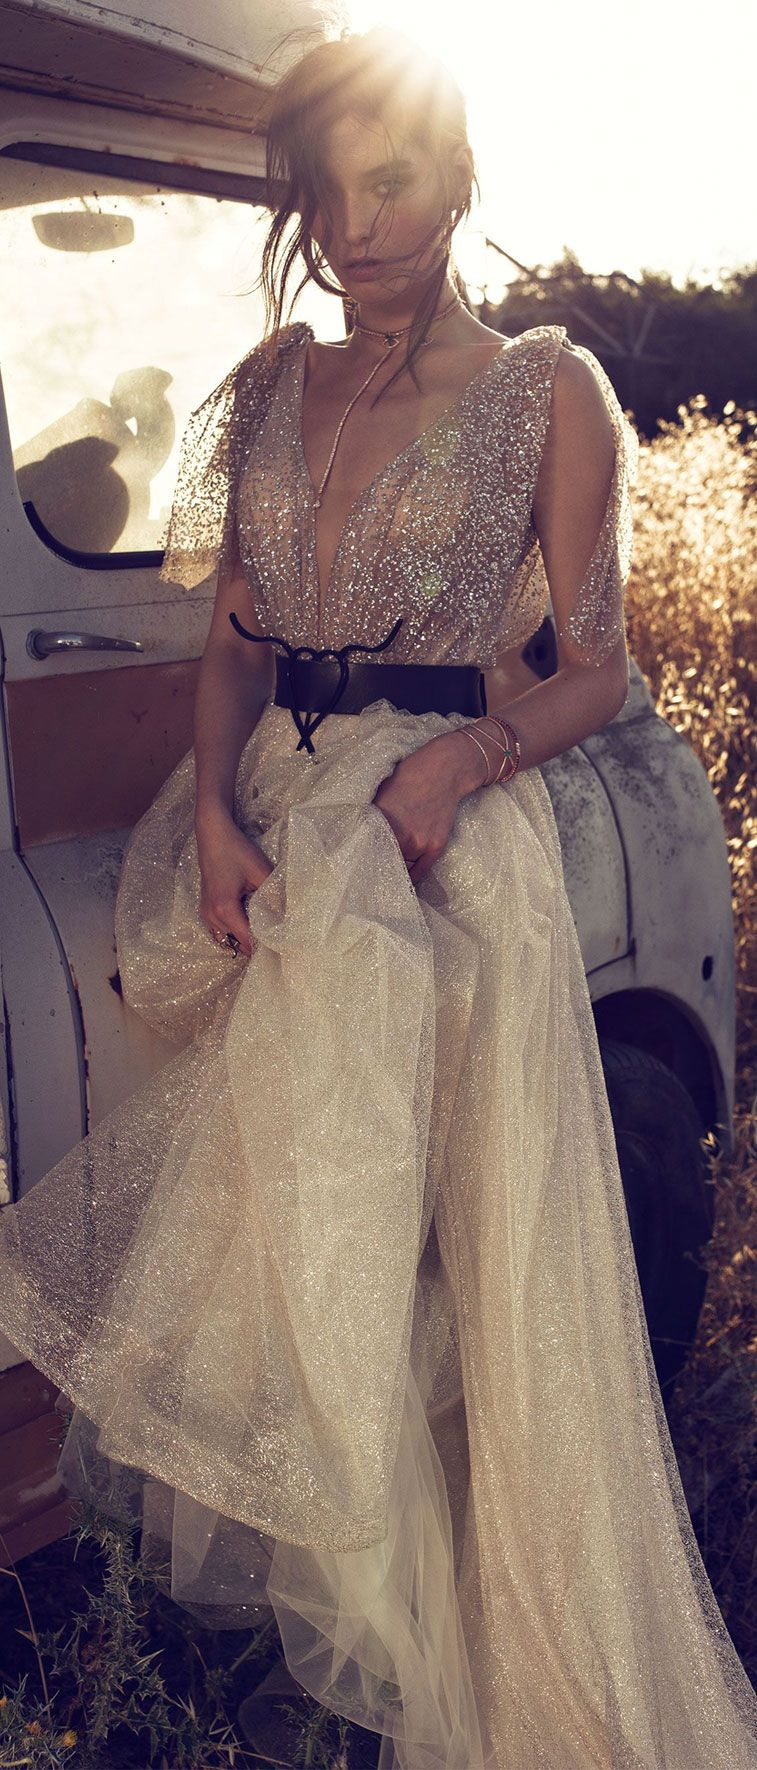 Zahavit Tshuba Wedding Dresses – Nostalgia Bridal Collection